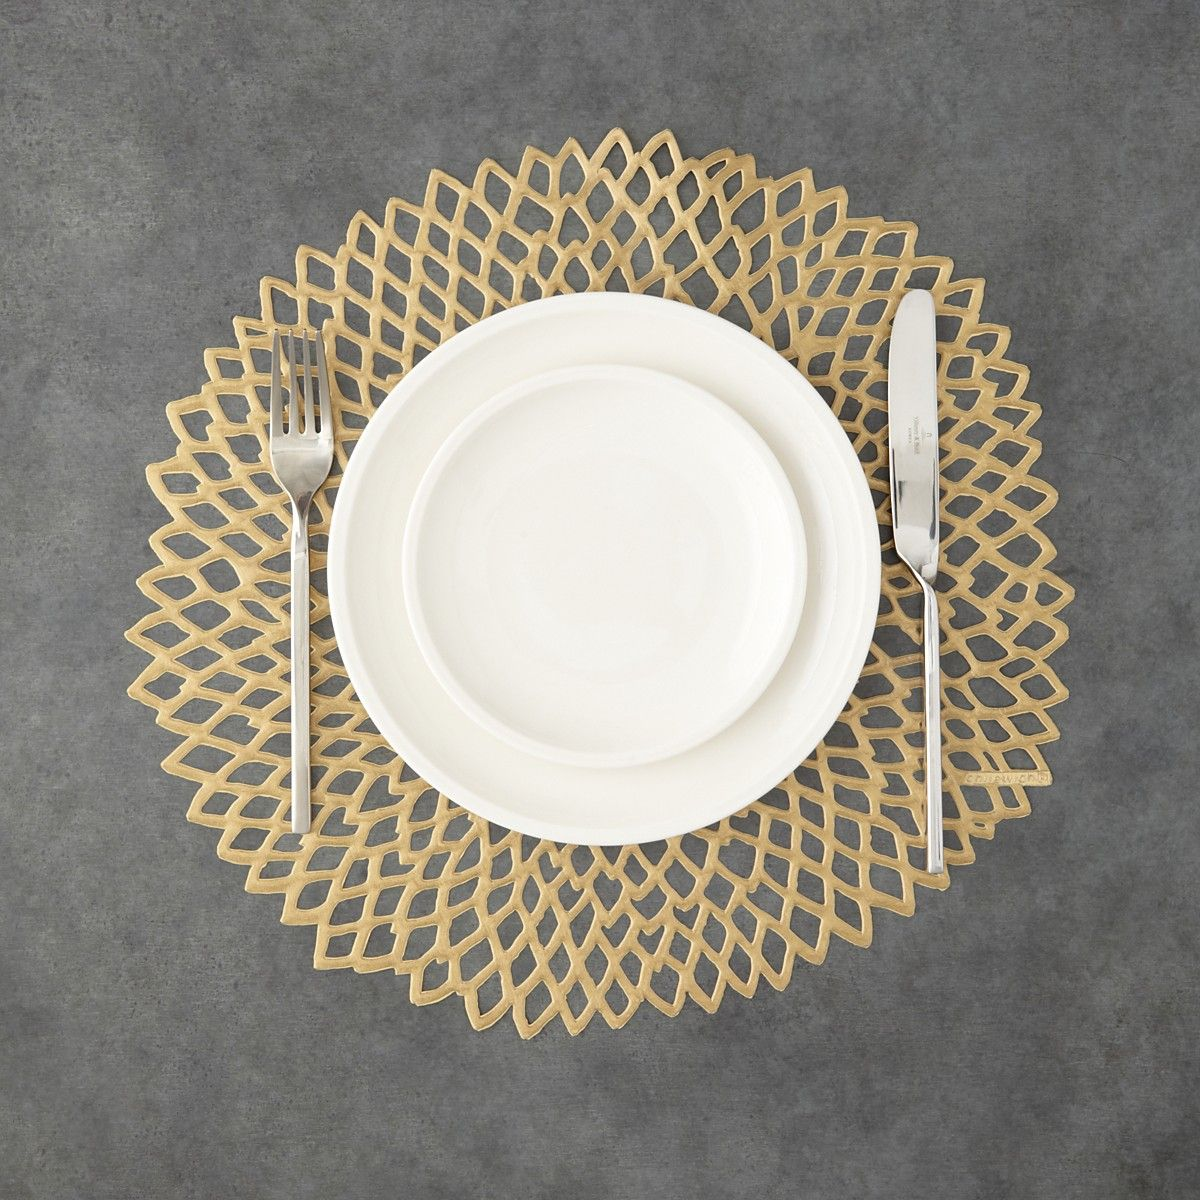 Chilewich Dahlia Pressed Vinyl Round Table Linens Bloomingdale S Chilewich Placemats Easter Placemats